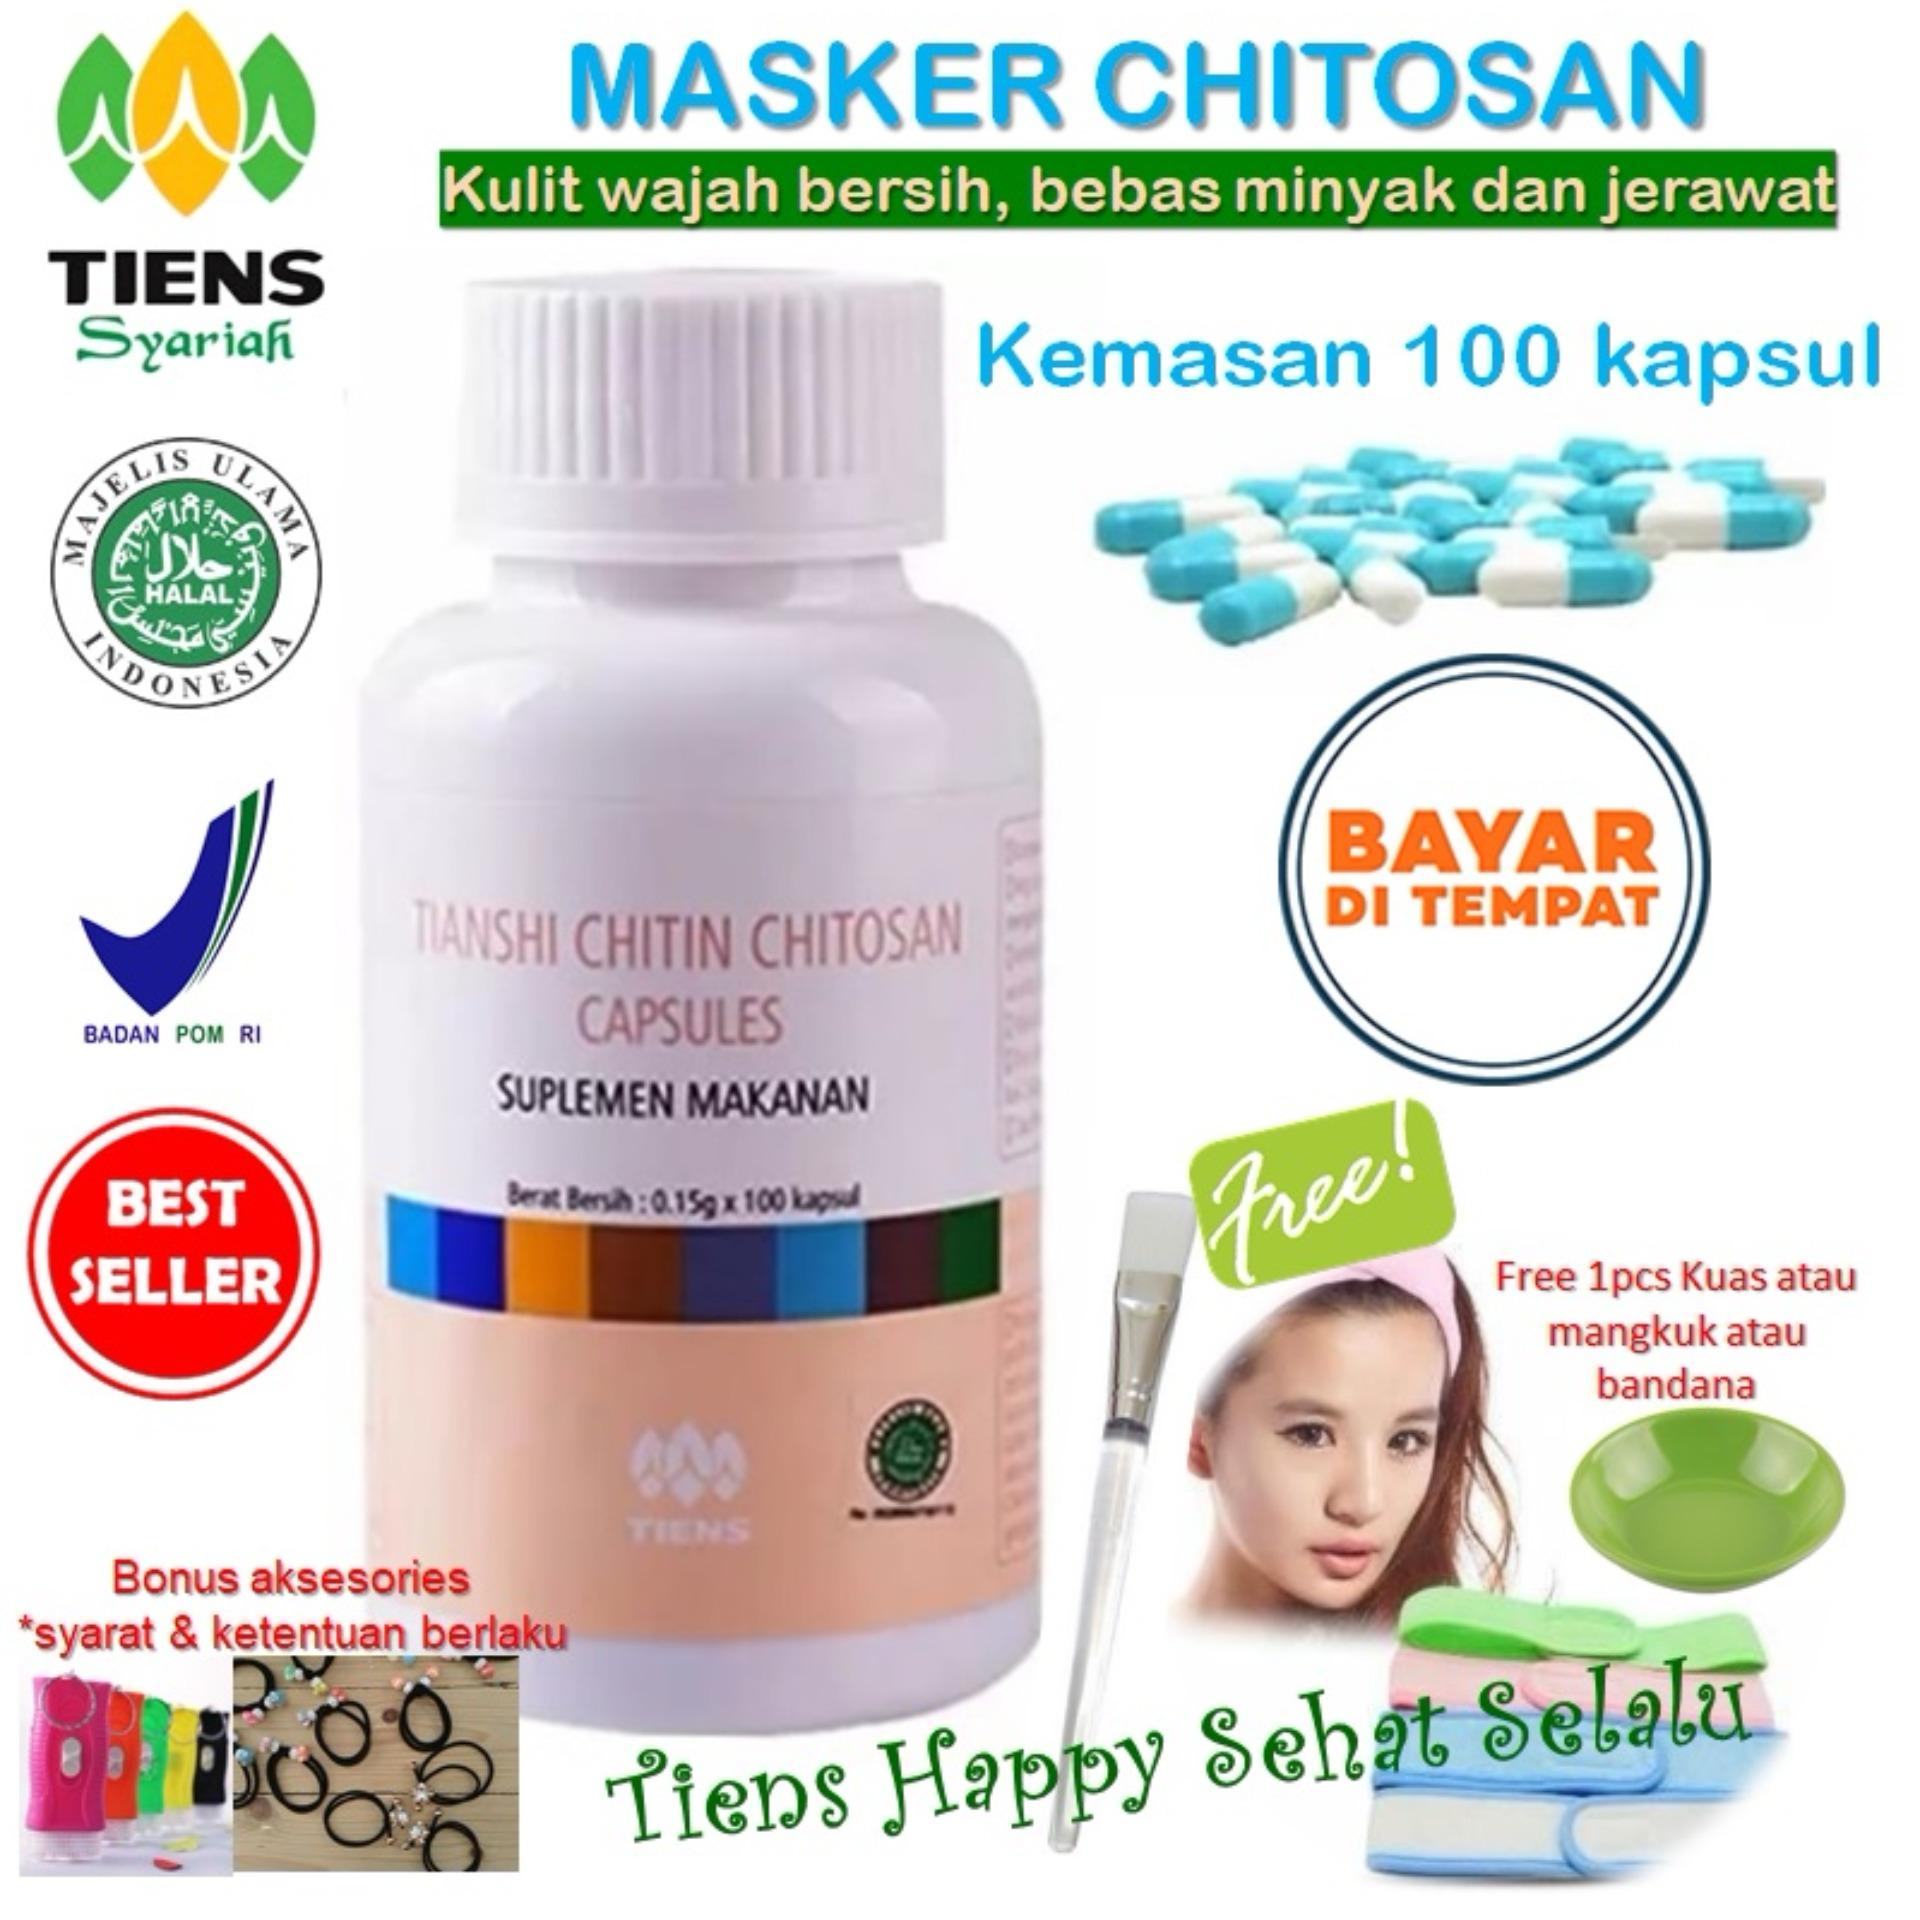 Beli Tiens Masker Chitosan Herbal Anti Jerawat Paket 100 Kapsul Tiens Happy Gratis Kuas Indonesia